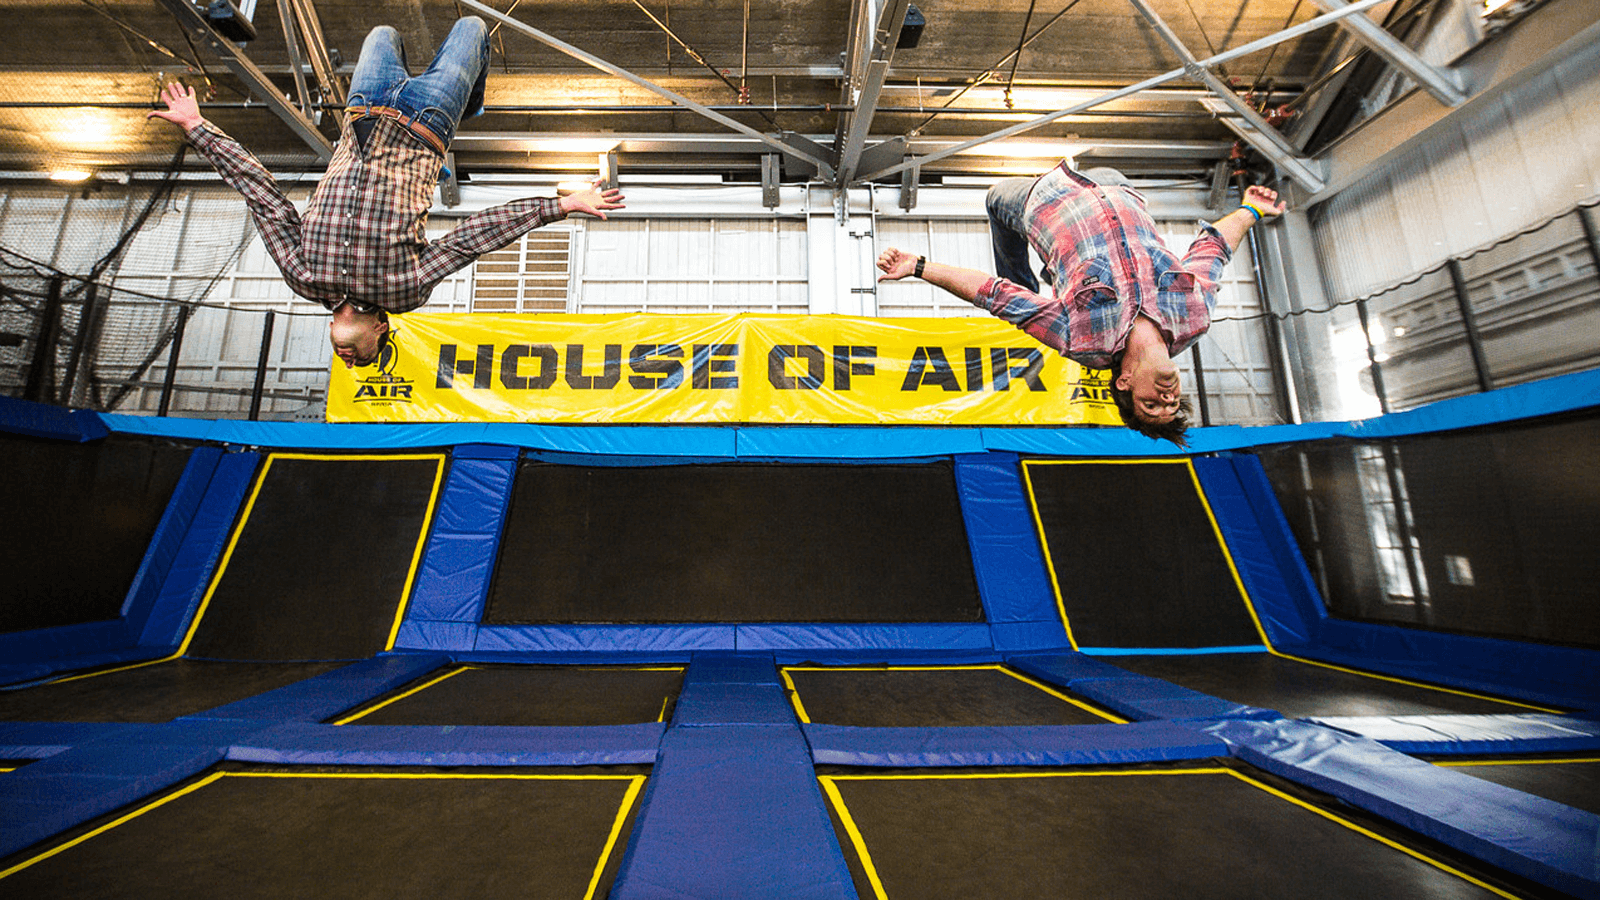 House of Air Founders Dave Schaeffer and Paul McGeehan